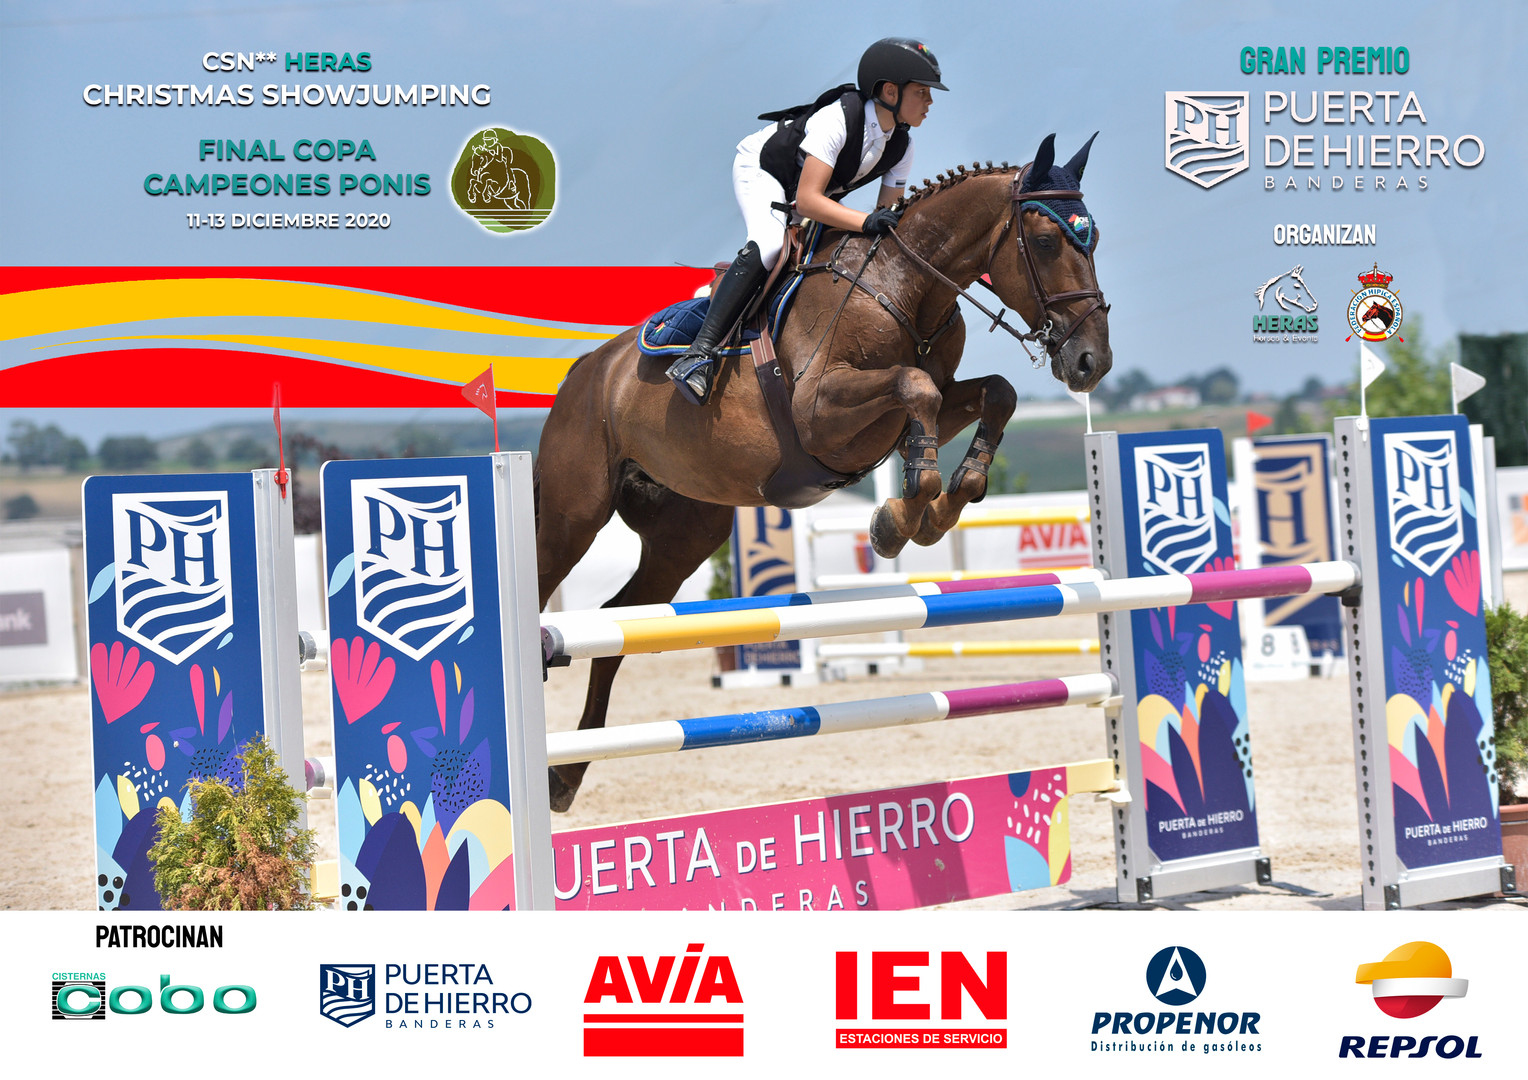 Cartel CSN2 HERAS CHRISTMAS SHOWJUMPING_